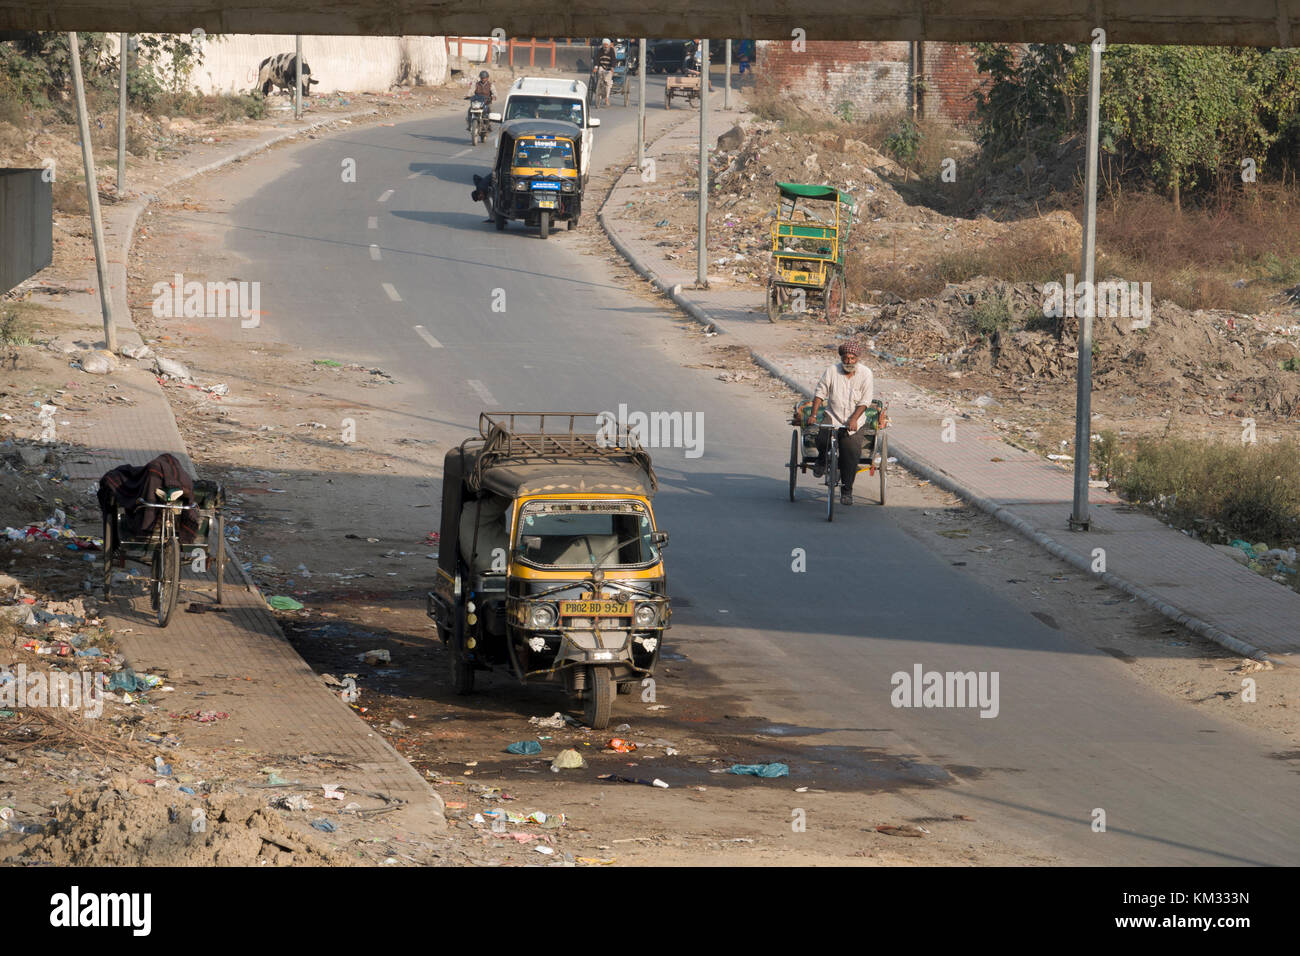 4550 Miles From Delhi >> Rickshaw Bajaj Stock Photos & Rickshaw Bajaj Stock Images - Alamy